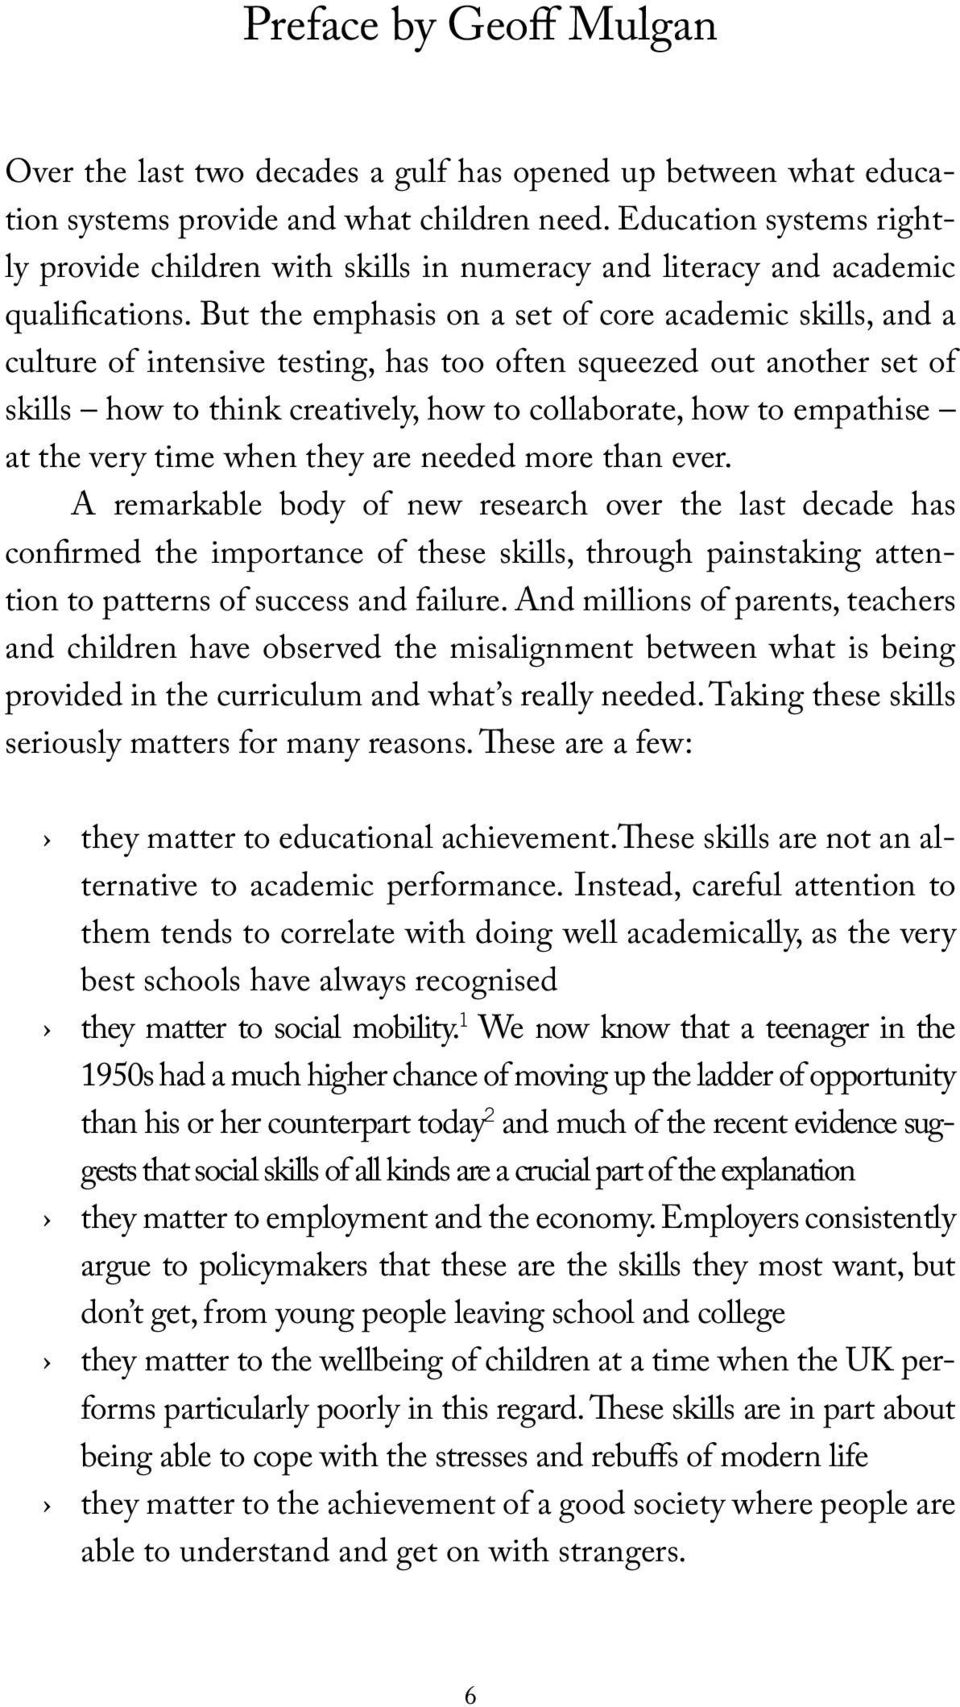 But the emphasis on a set of core academic skills, and a culture of intensive testing, has too often squeezed out another set of skills how to think creatively, how to collaborate, how to empathise